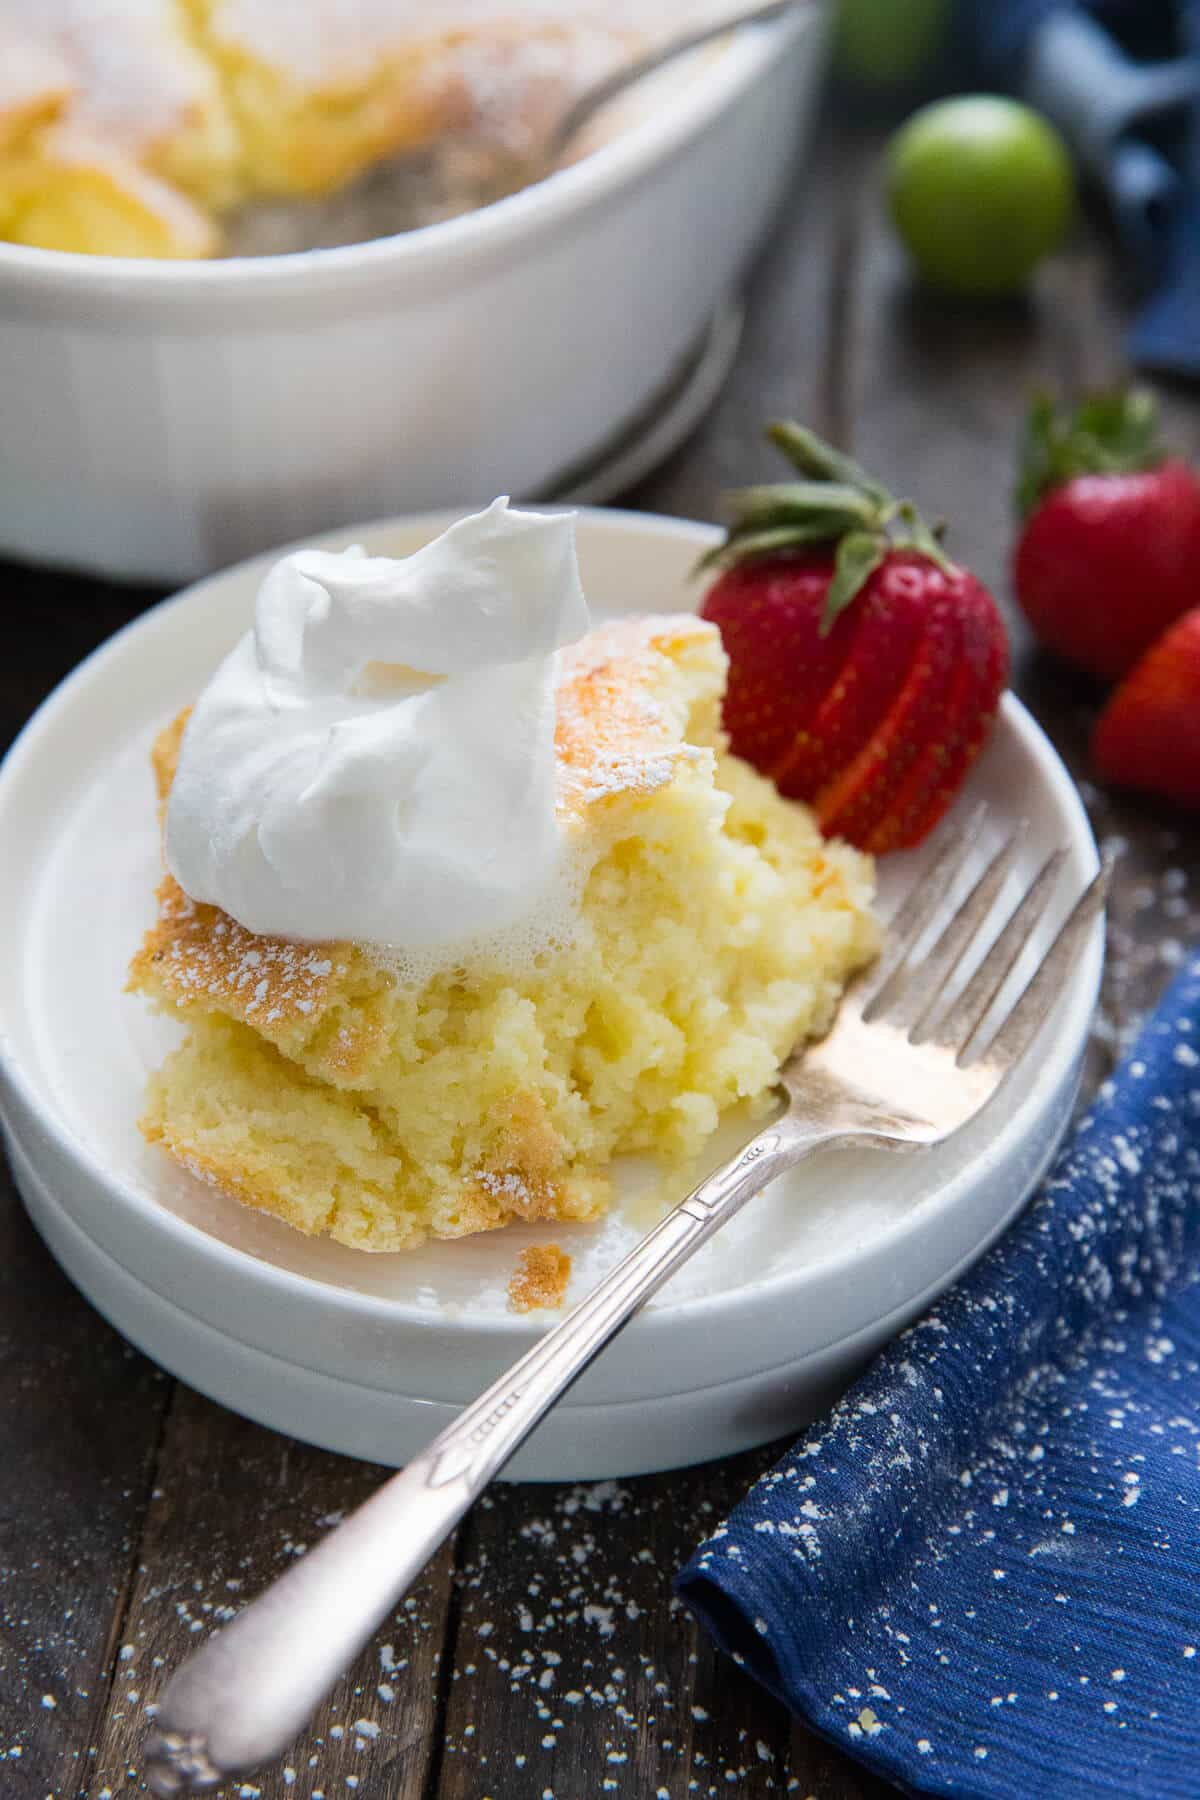 This pudding cake has a light fluffy cake layer that bakes up over a silky pudding layer. It is magical!